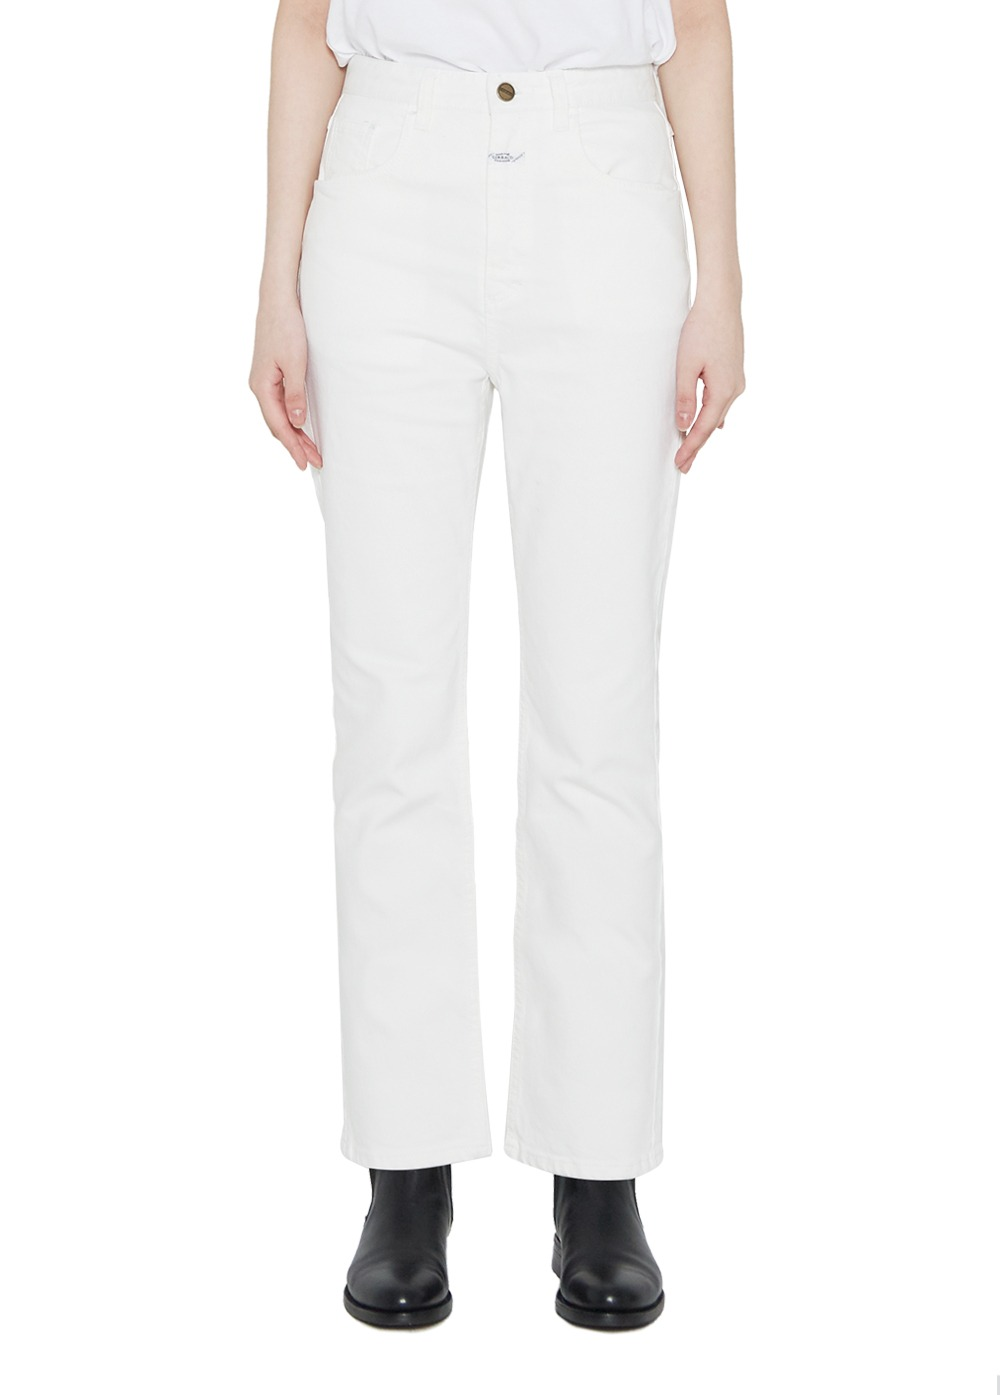 MARITHE W STANDARD JEANS cream